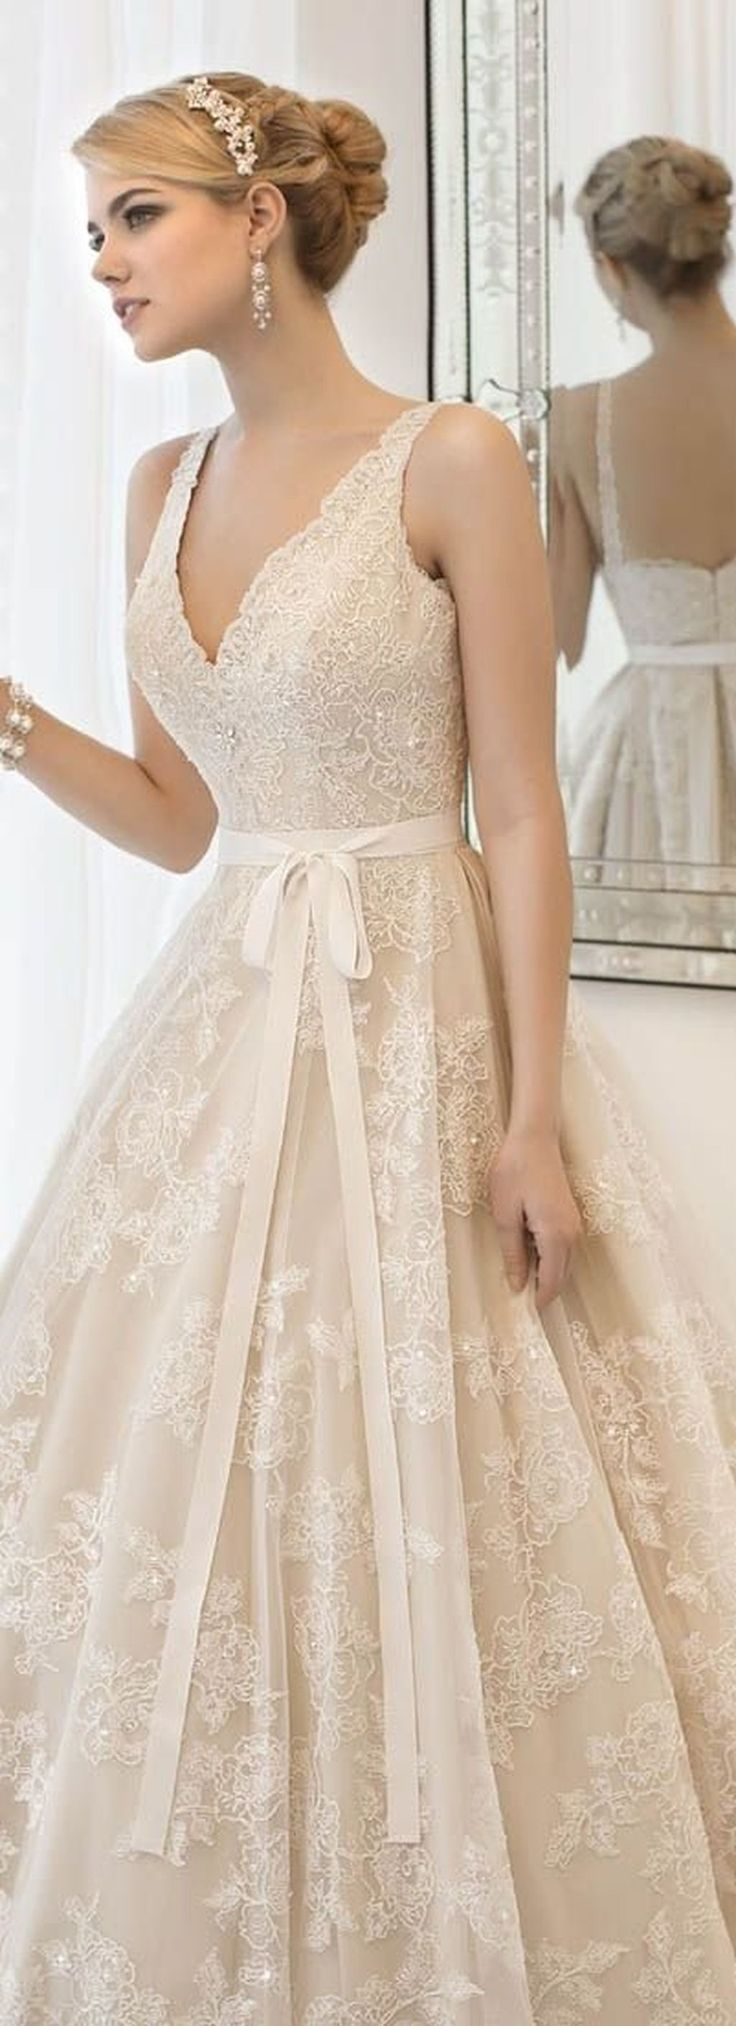 awesome 74 Gorgeous Sequin Wedding Dress Ideas Every Women Will Love http://lovellywedding.com/2017/09/18/74-gorgeous-sequin-wedding-dress-ideas-every-women-will-love/